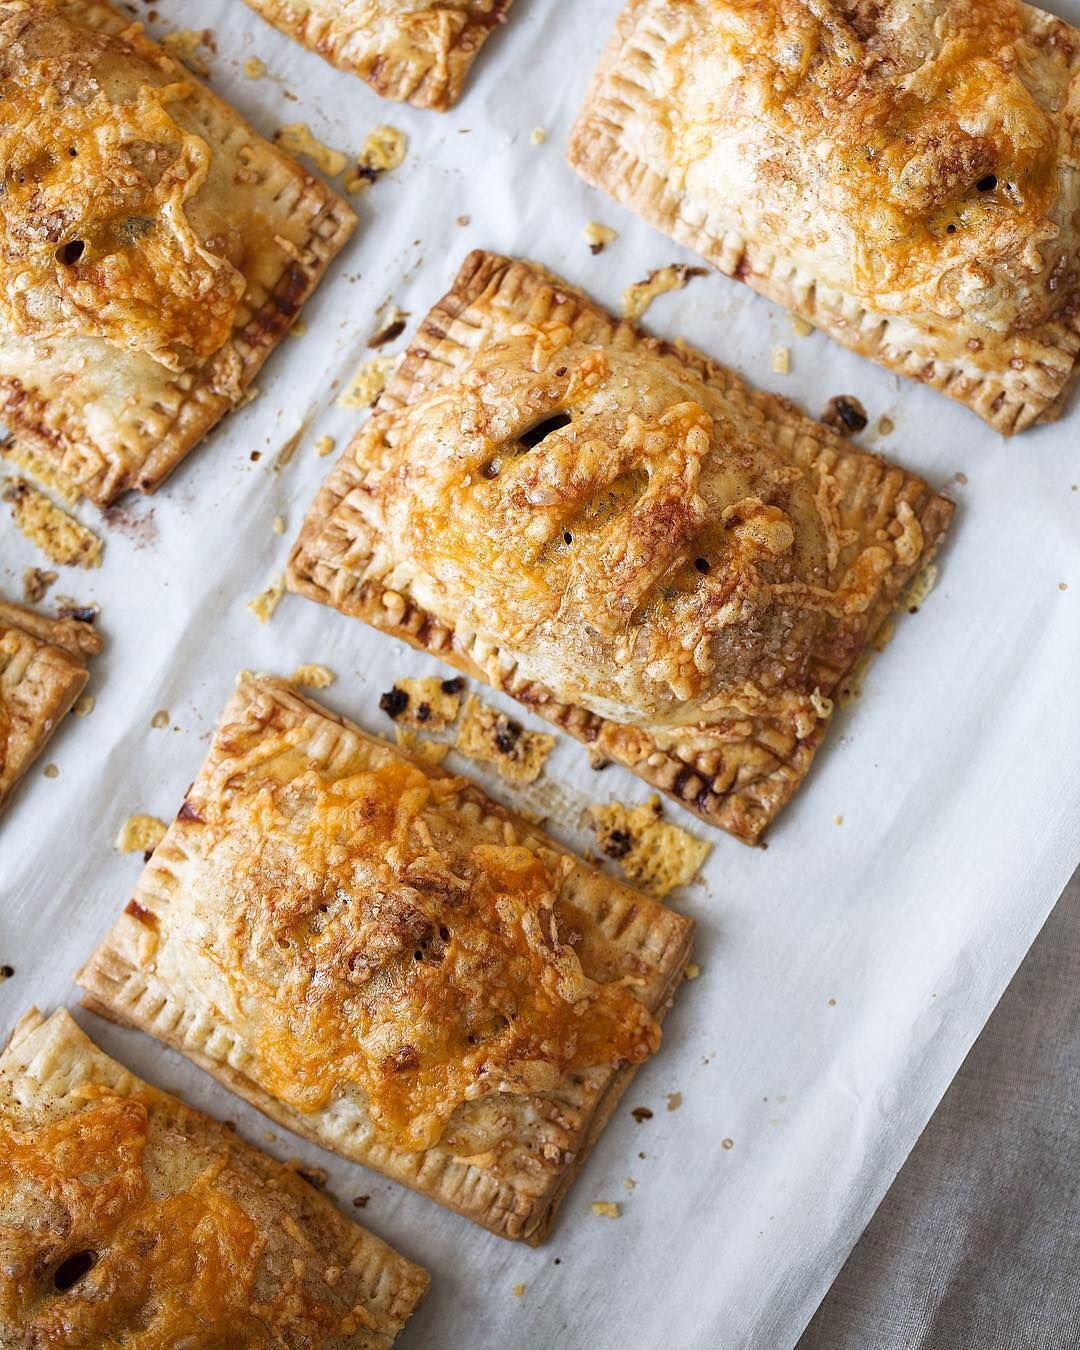 Sweet & savory combo: @cookingwithcocktailrings apple cheddar hand pies . Got a favorite snack hack? Share yours with #MyPinterest